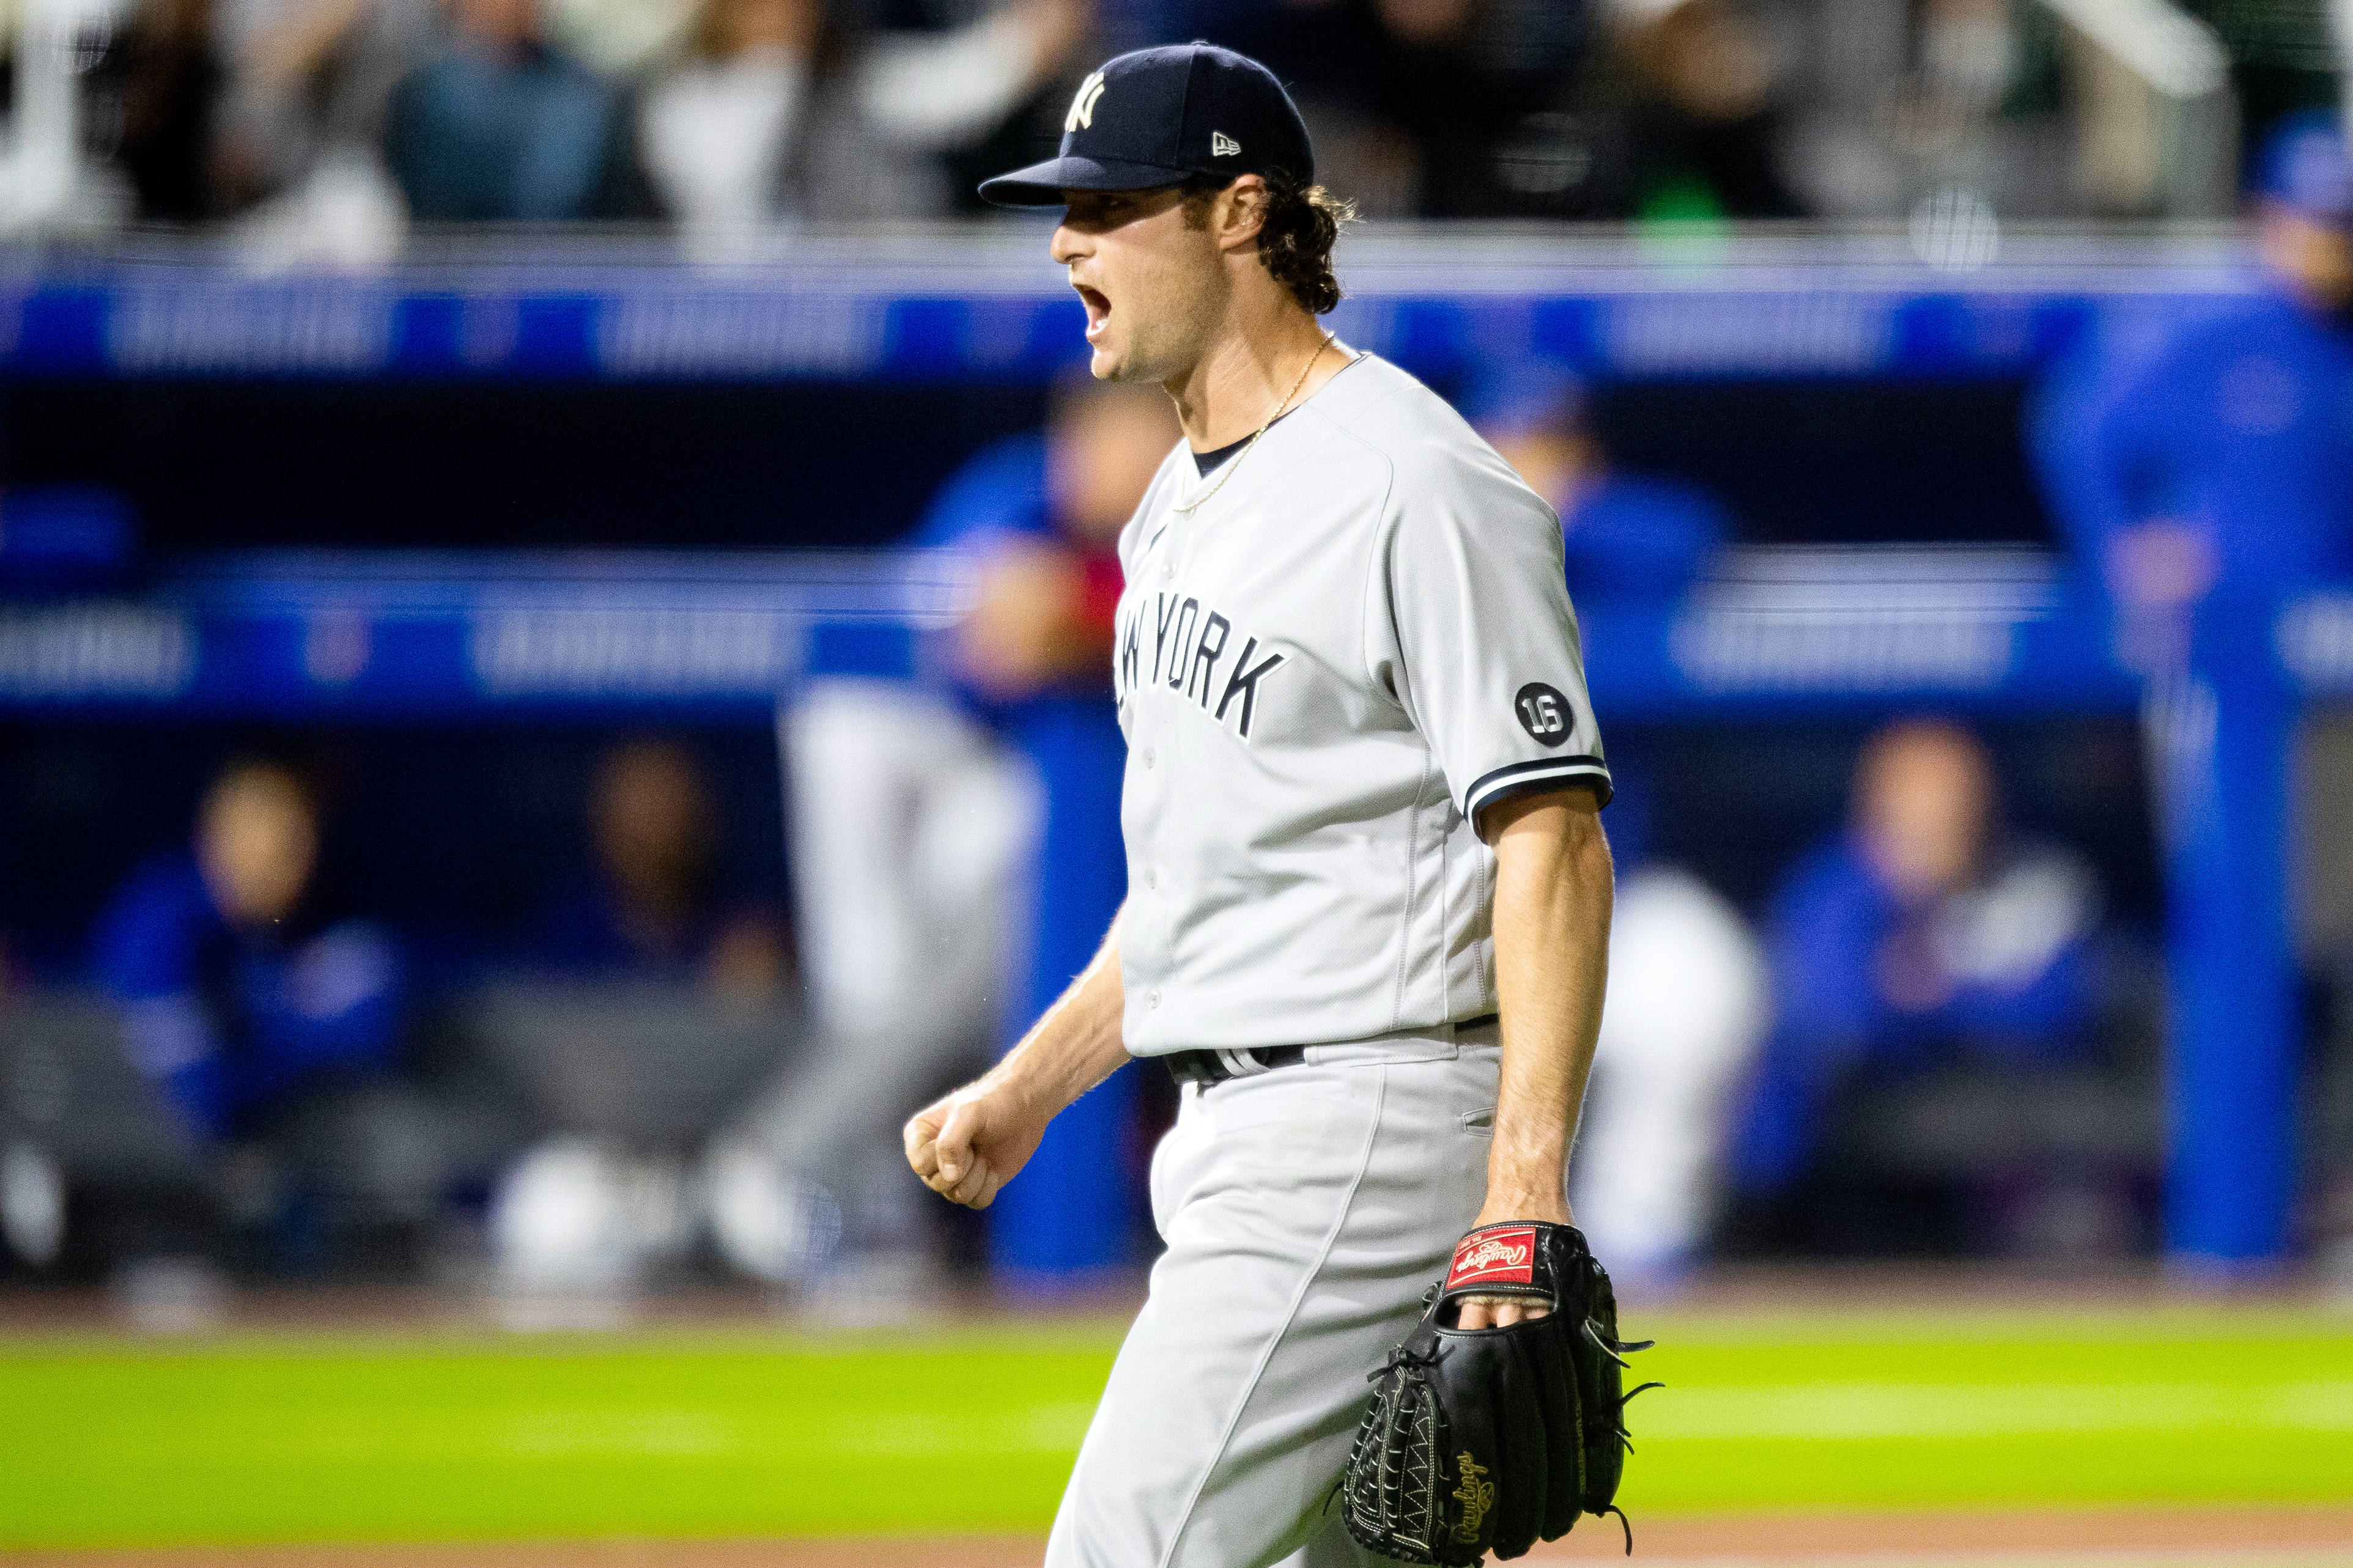 Gerrit Cole #45 of the New York Yankees reacts during the game between the New York Yankees and the Toronto Blue Jays at Sahlen Field on Wednesday, June 16, 2021 in Buffalo, New York.